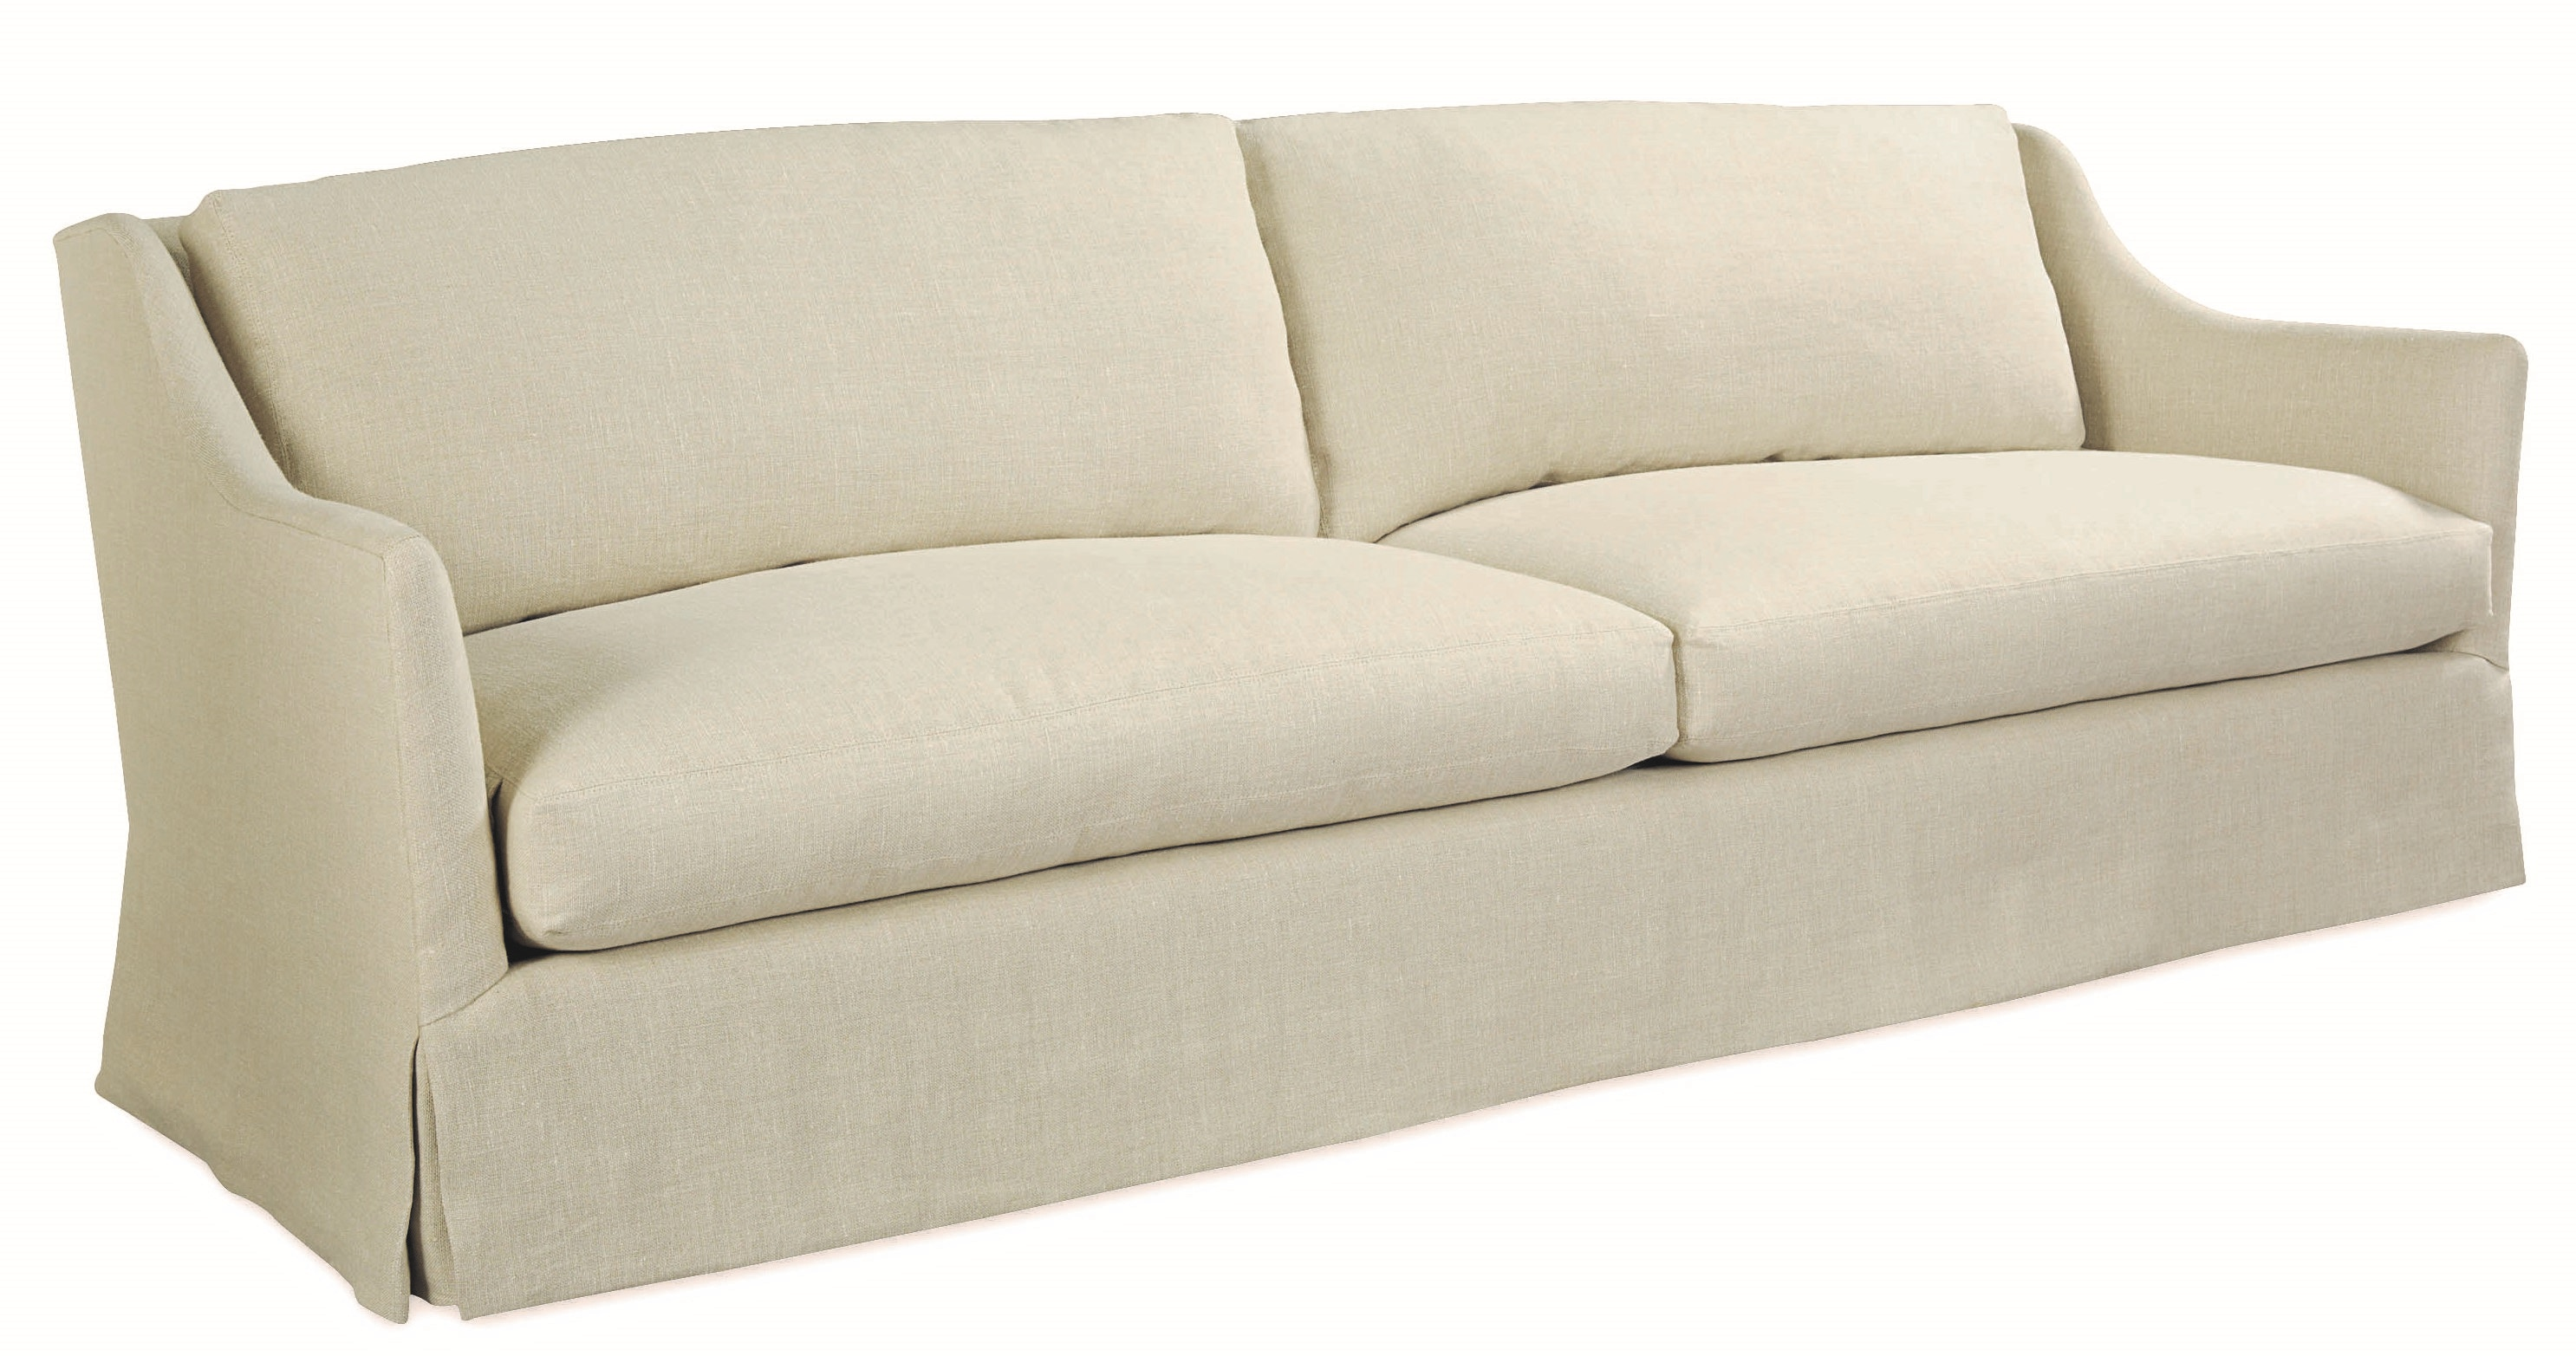 sofa virginia beach bed couches lee industries living room extra long 3821 44